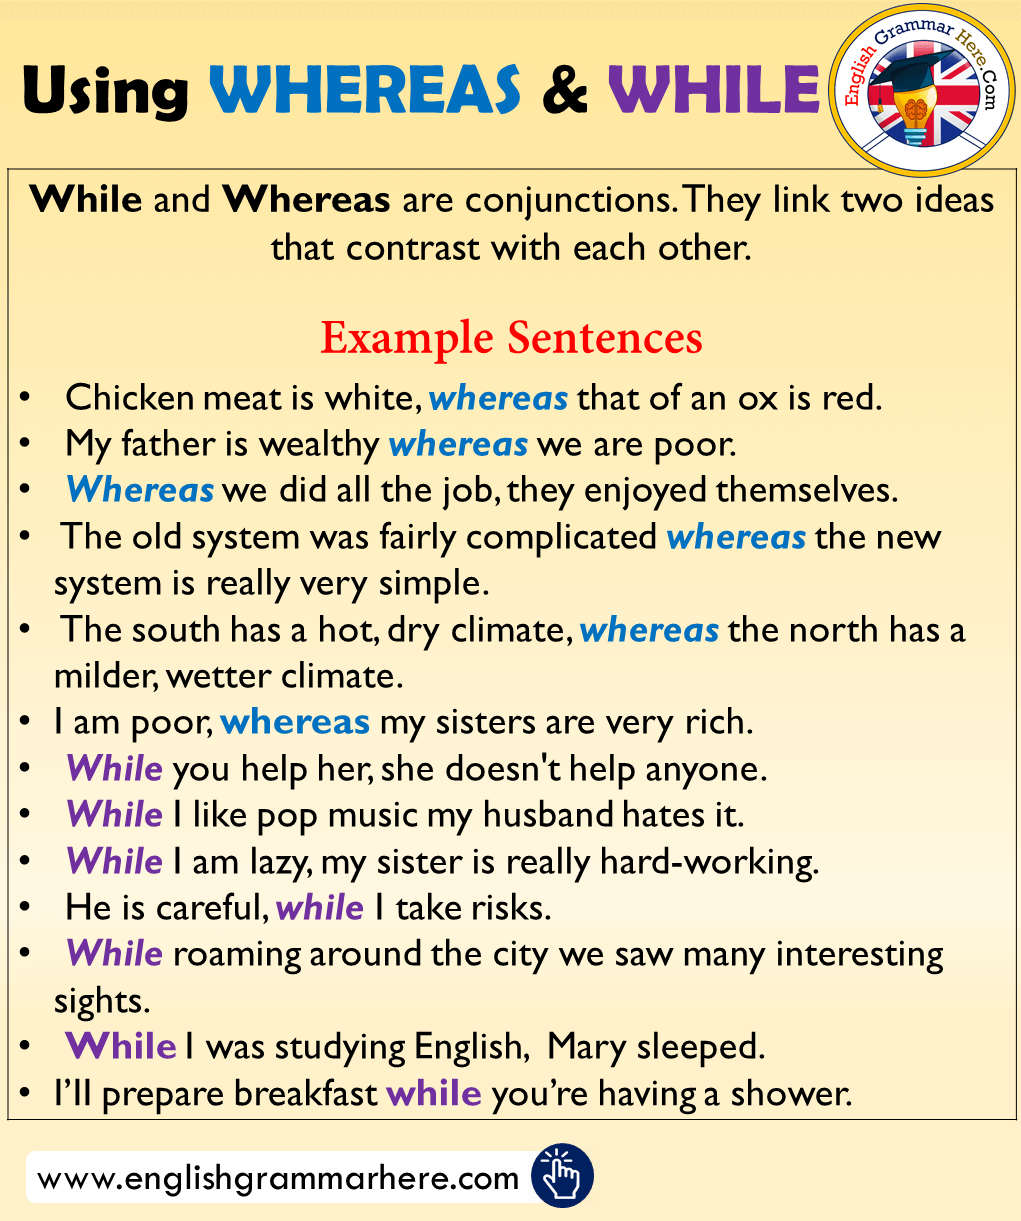 Using WHEREAS & WHILE, Example Sentences